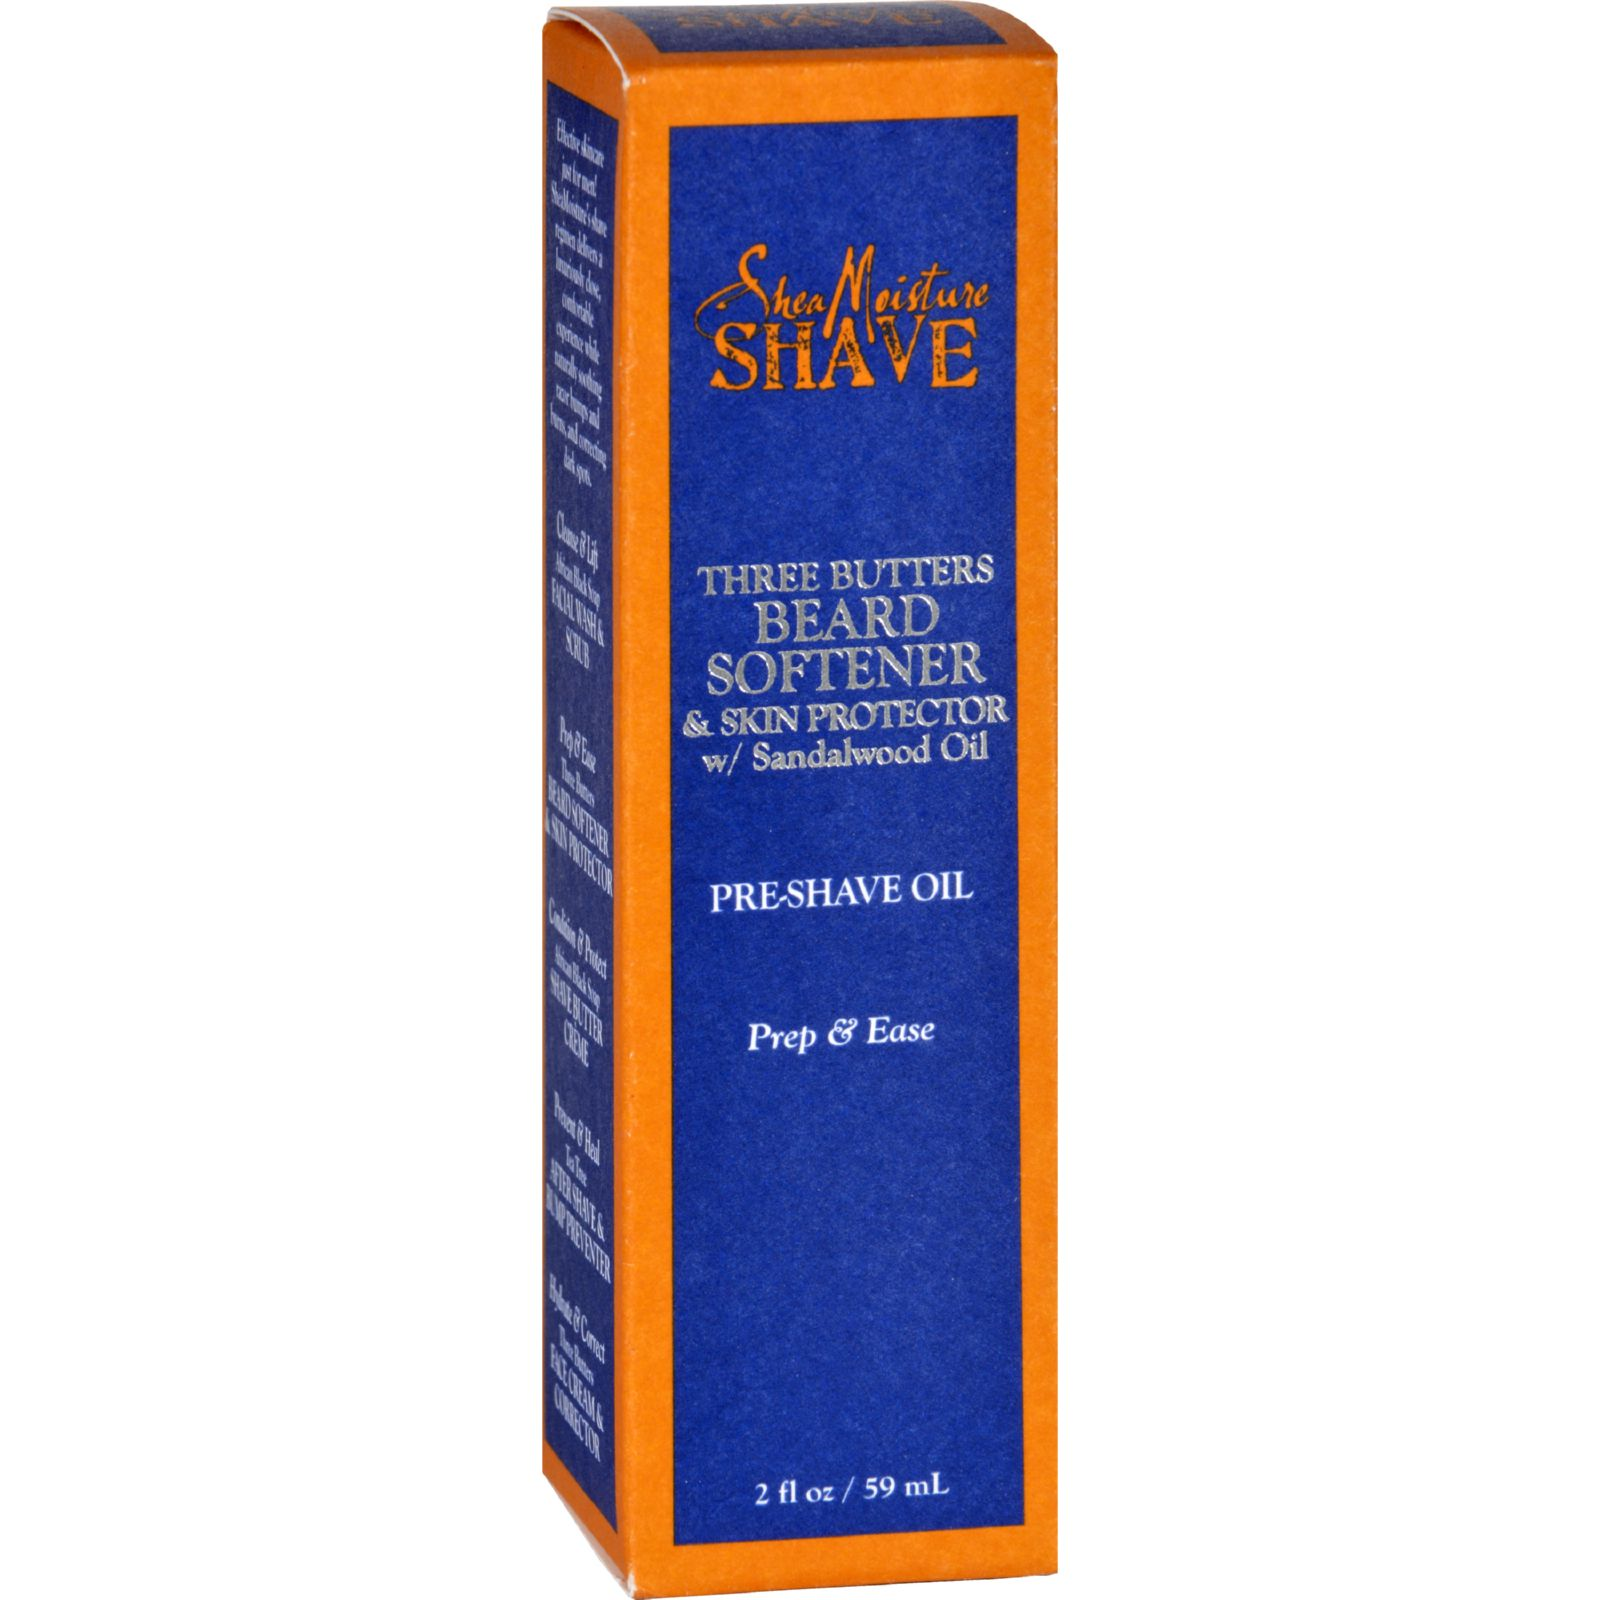 SheaMoisture Pre Shave Oil  Beard Softener and Skin Protector  Three Butters  Men  2 oz